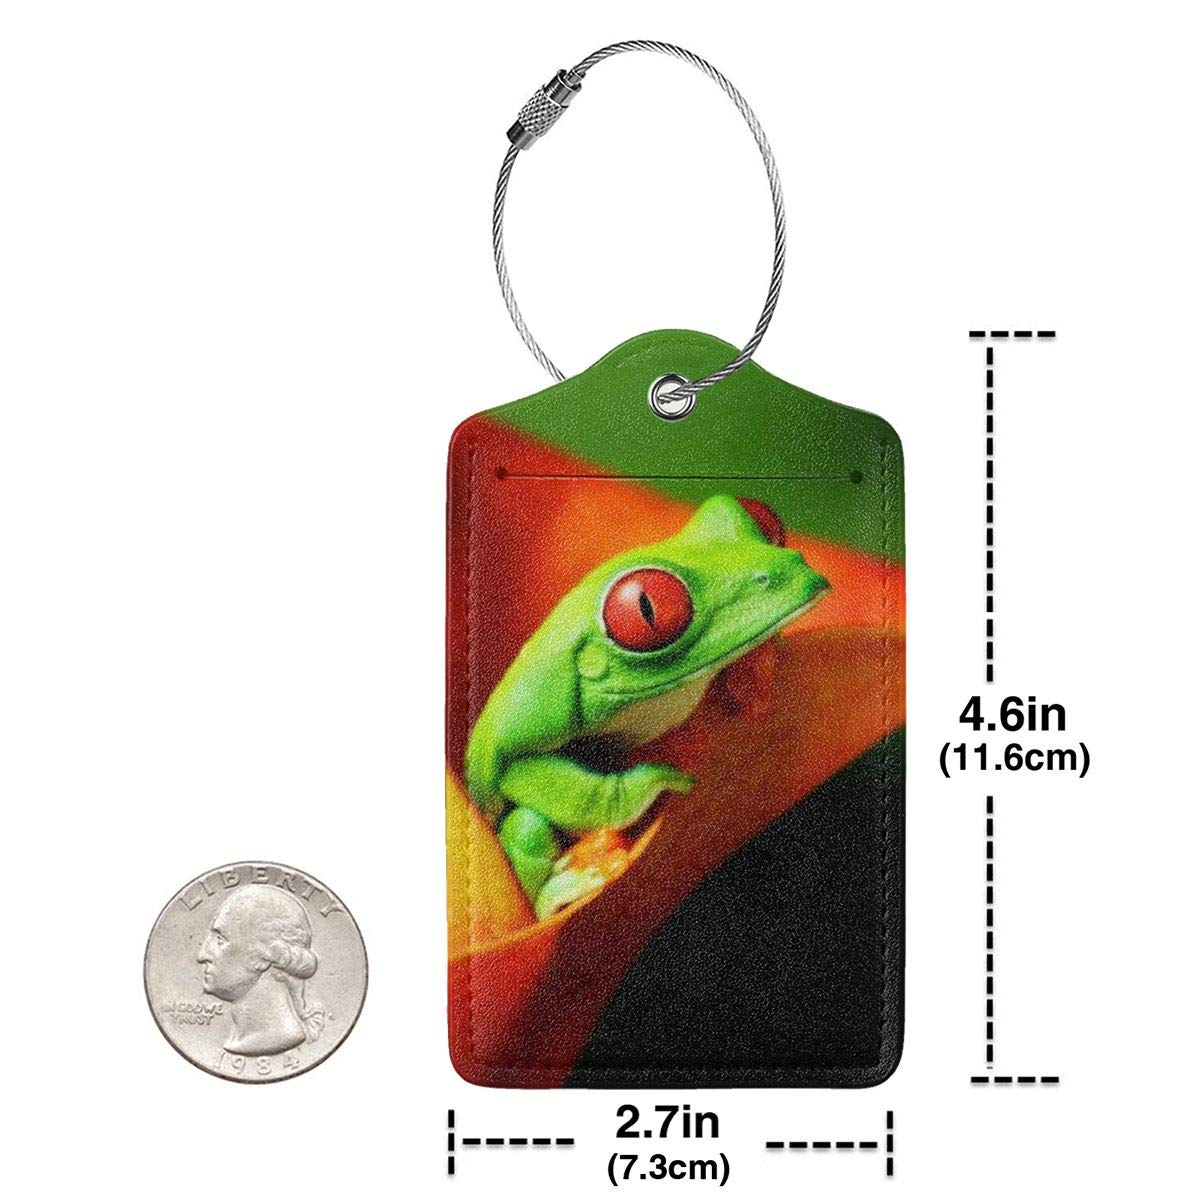 Nature Frog Luggage Tag Label Travel Bag Label With Privacy Cover Luggage Tag Leather Personalized Suitcase Tag Travel Accessories